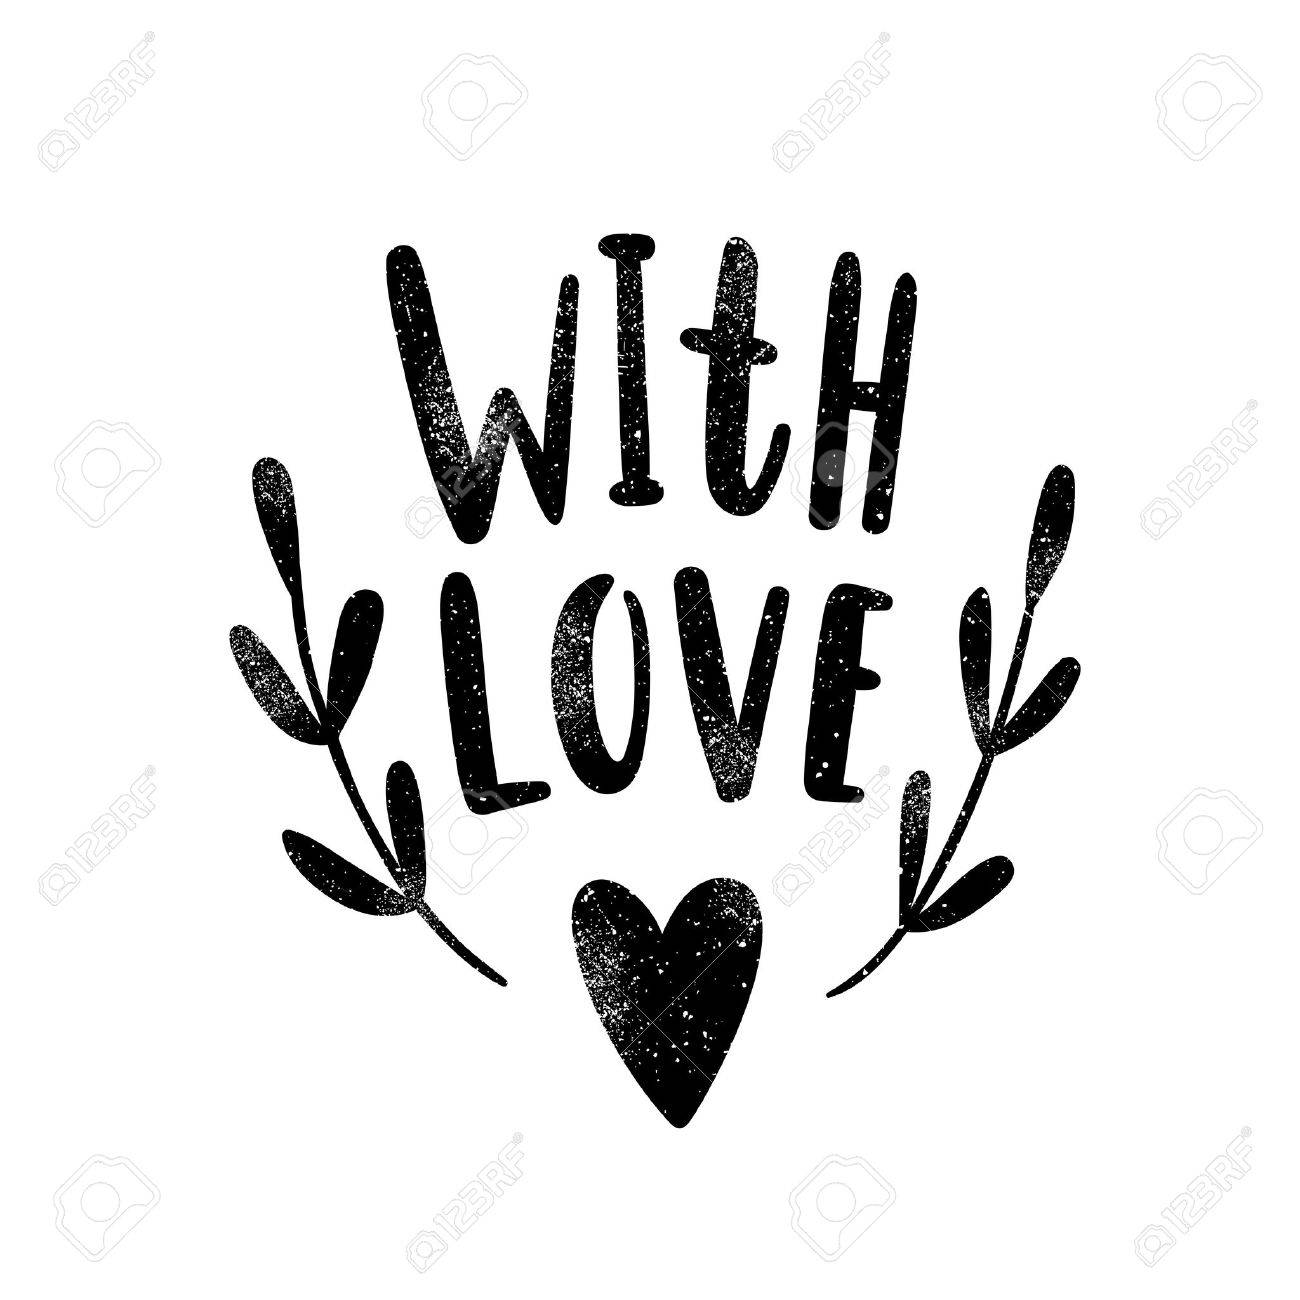 With love black silhouette vector hand drawn illustration stock illustration 70808107